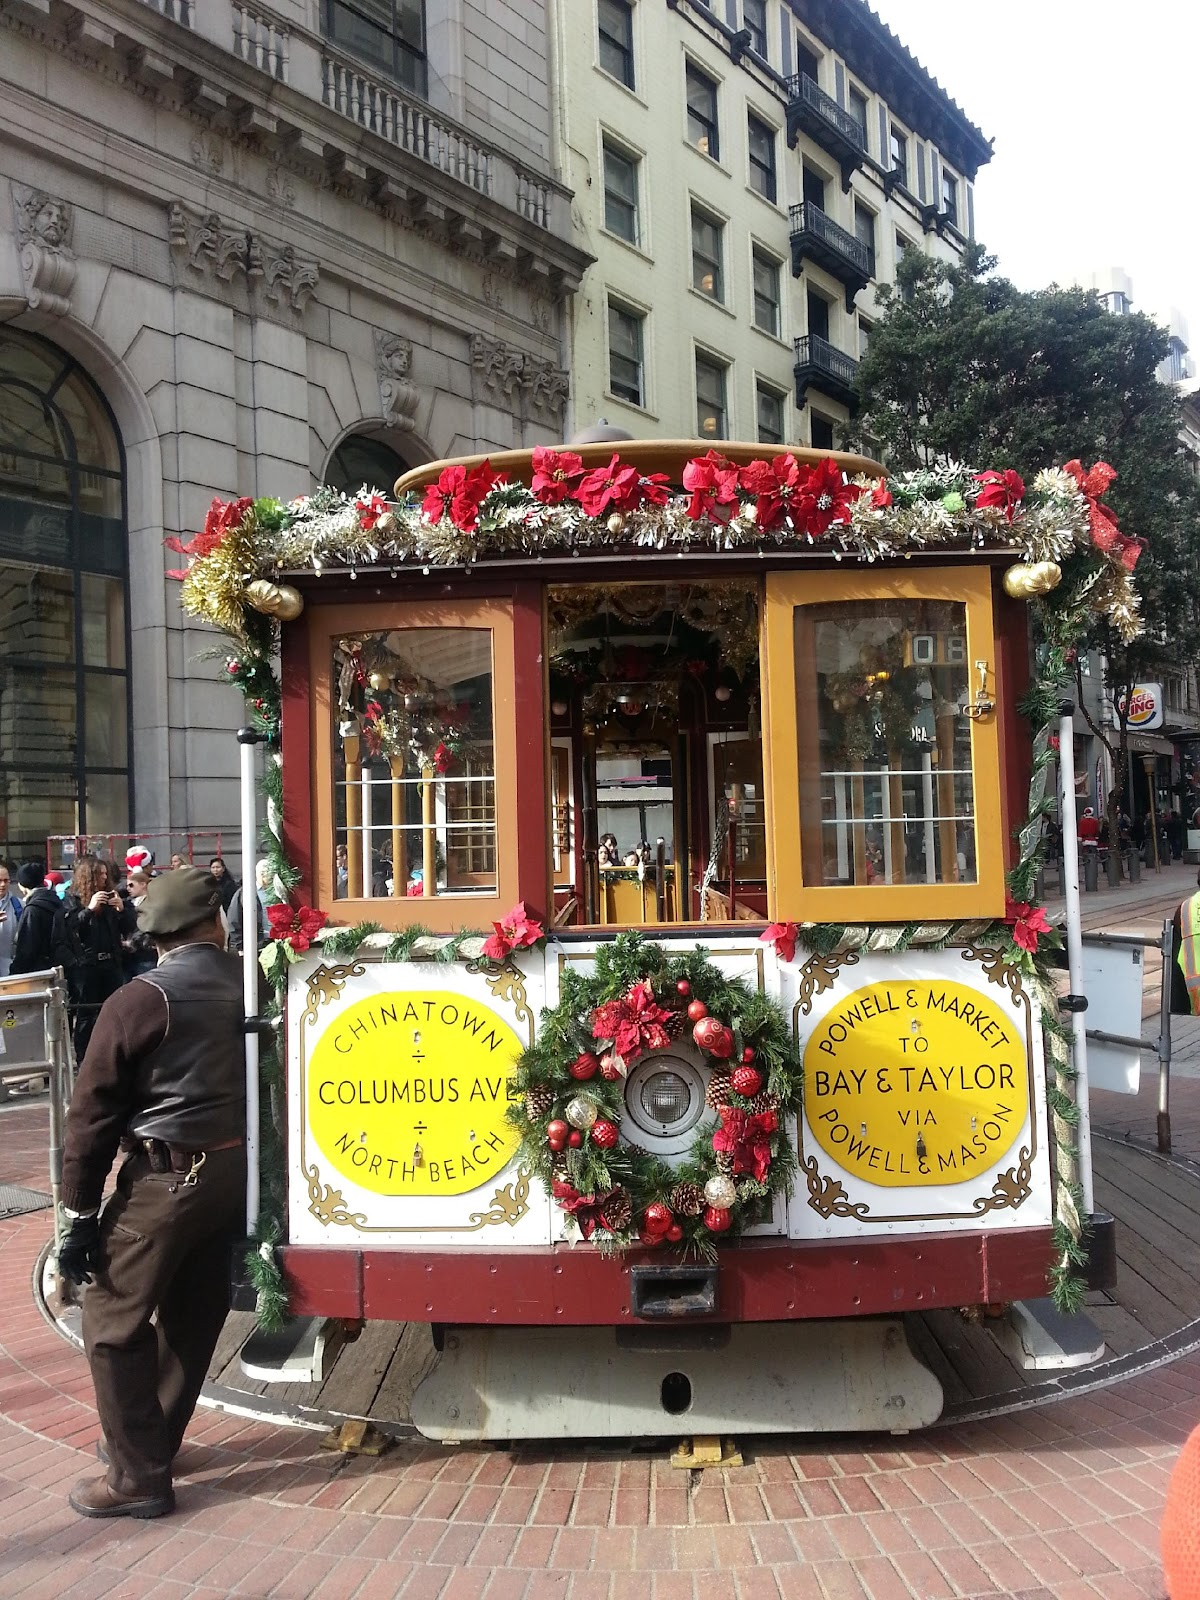 C:\Users\Dan.Trone\Pictures\San Francisco street car_December 2015.jpeg